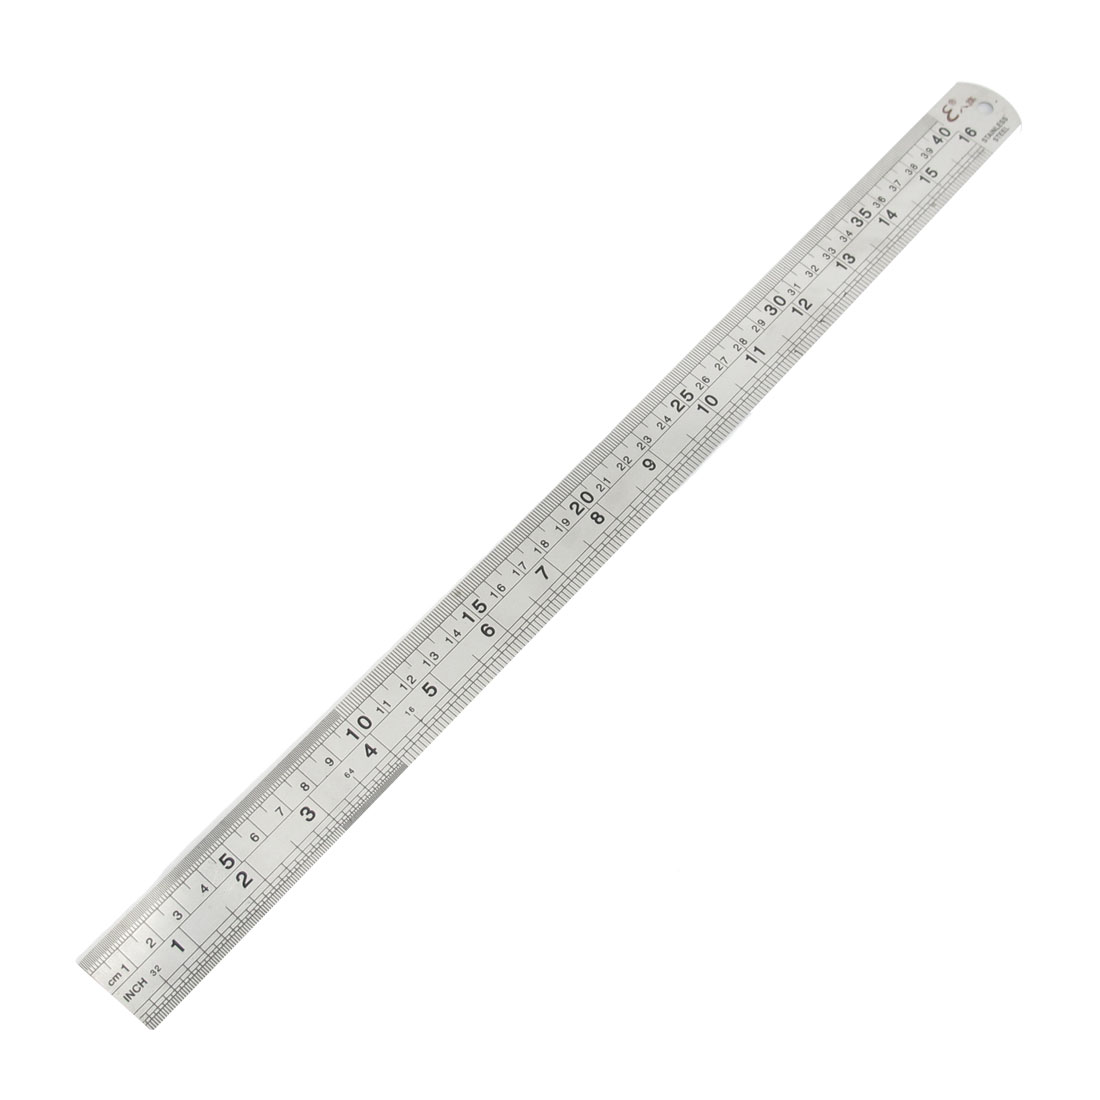 "40cm/16"" Measuring Range 2 Side Steel Straight Ruler Silver Tone Black"